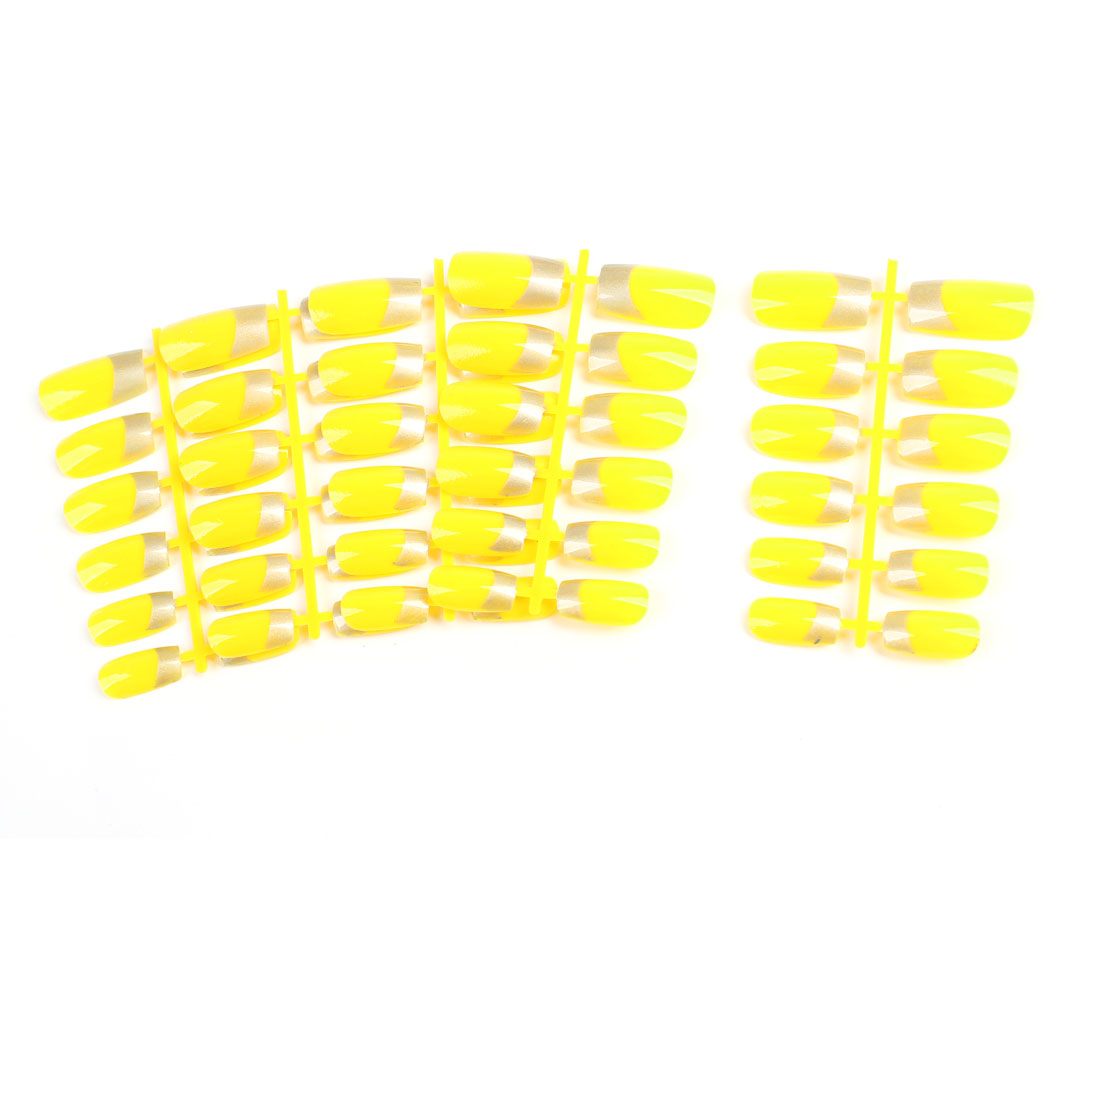 5 Pcs Yellow Silver Tone Artificial Fingernails for Lady